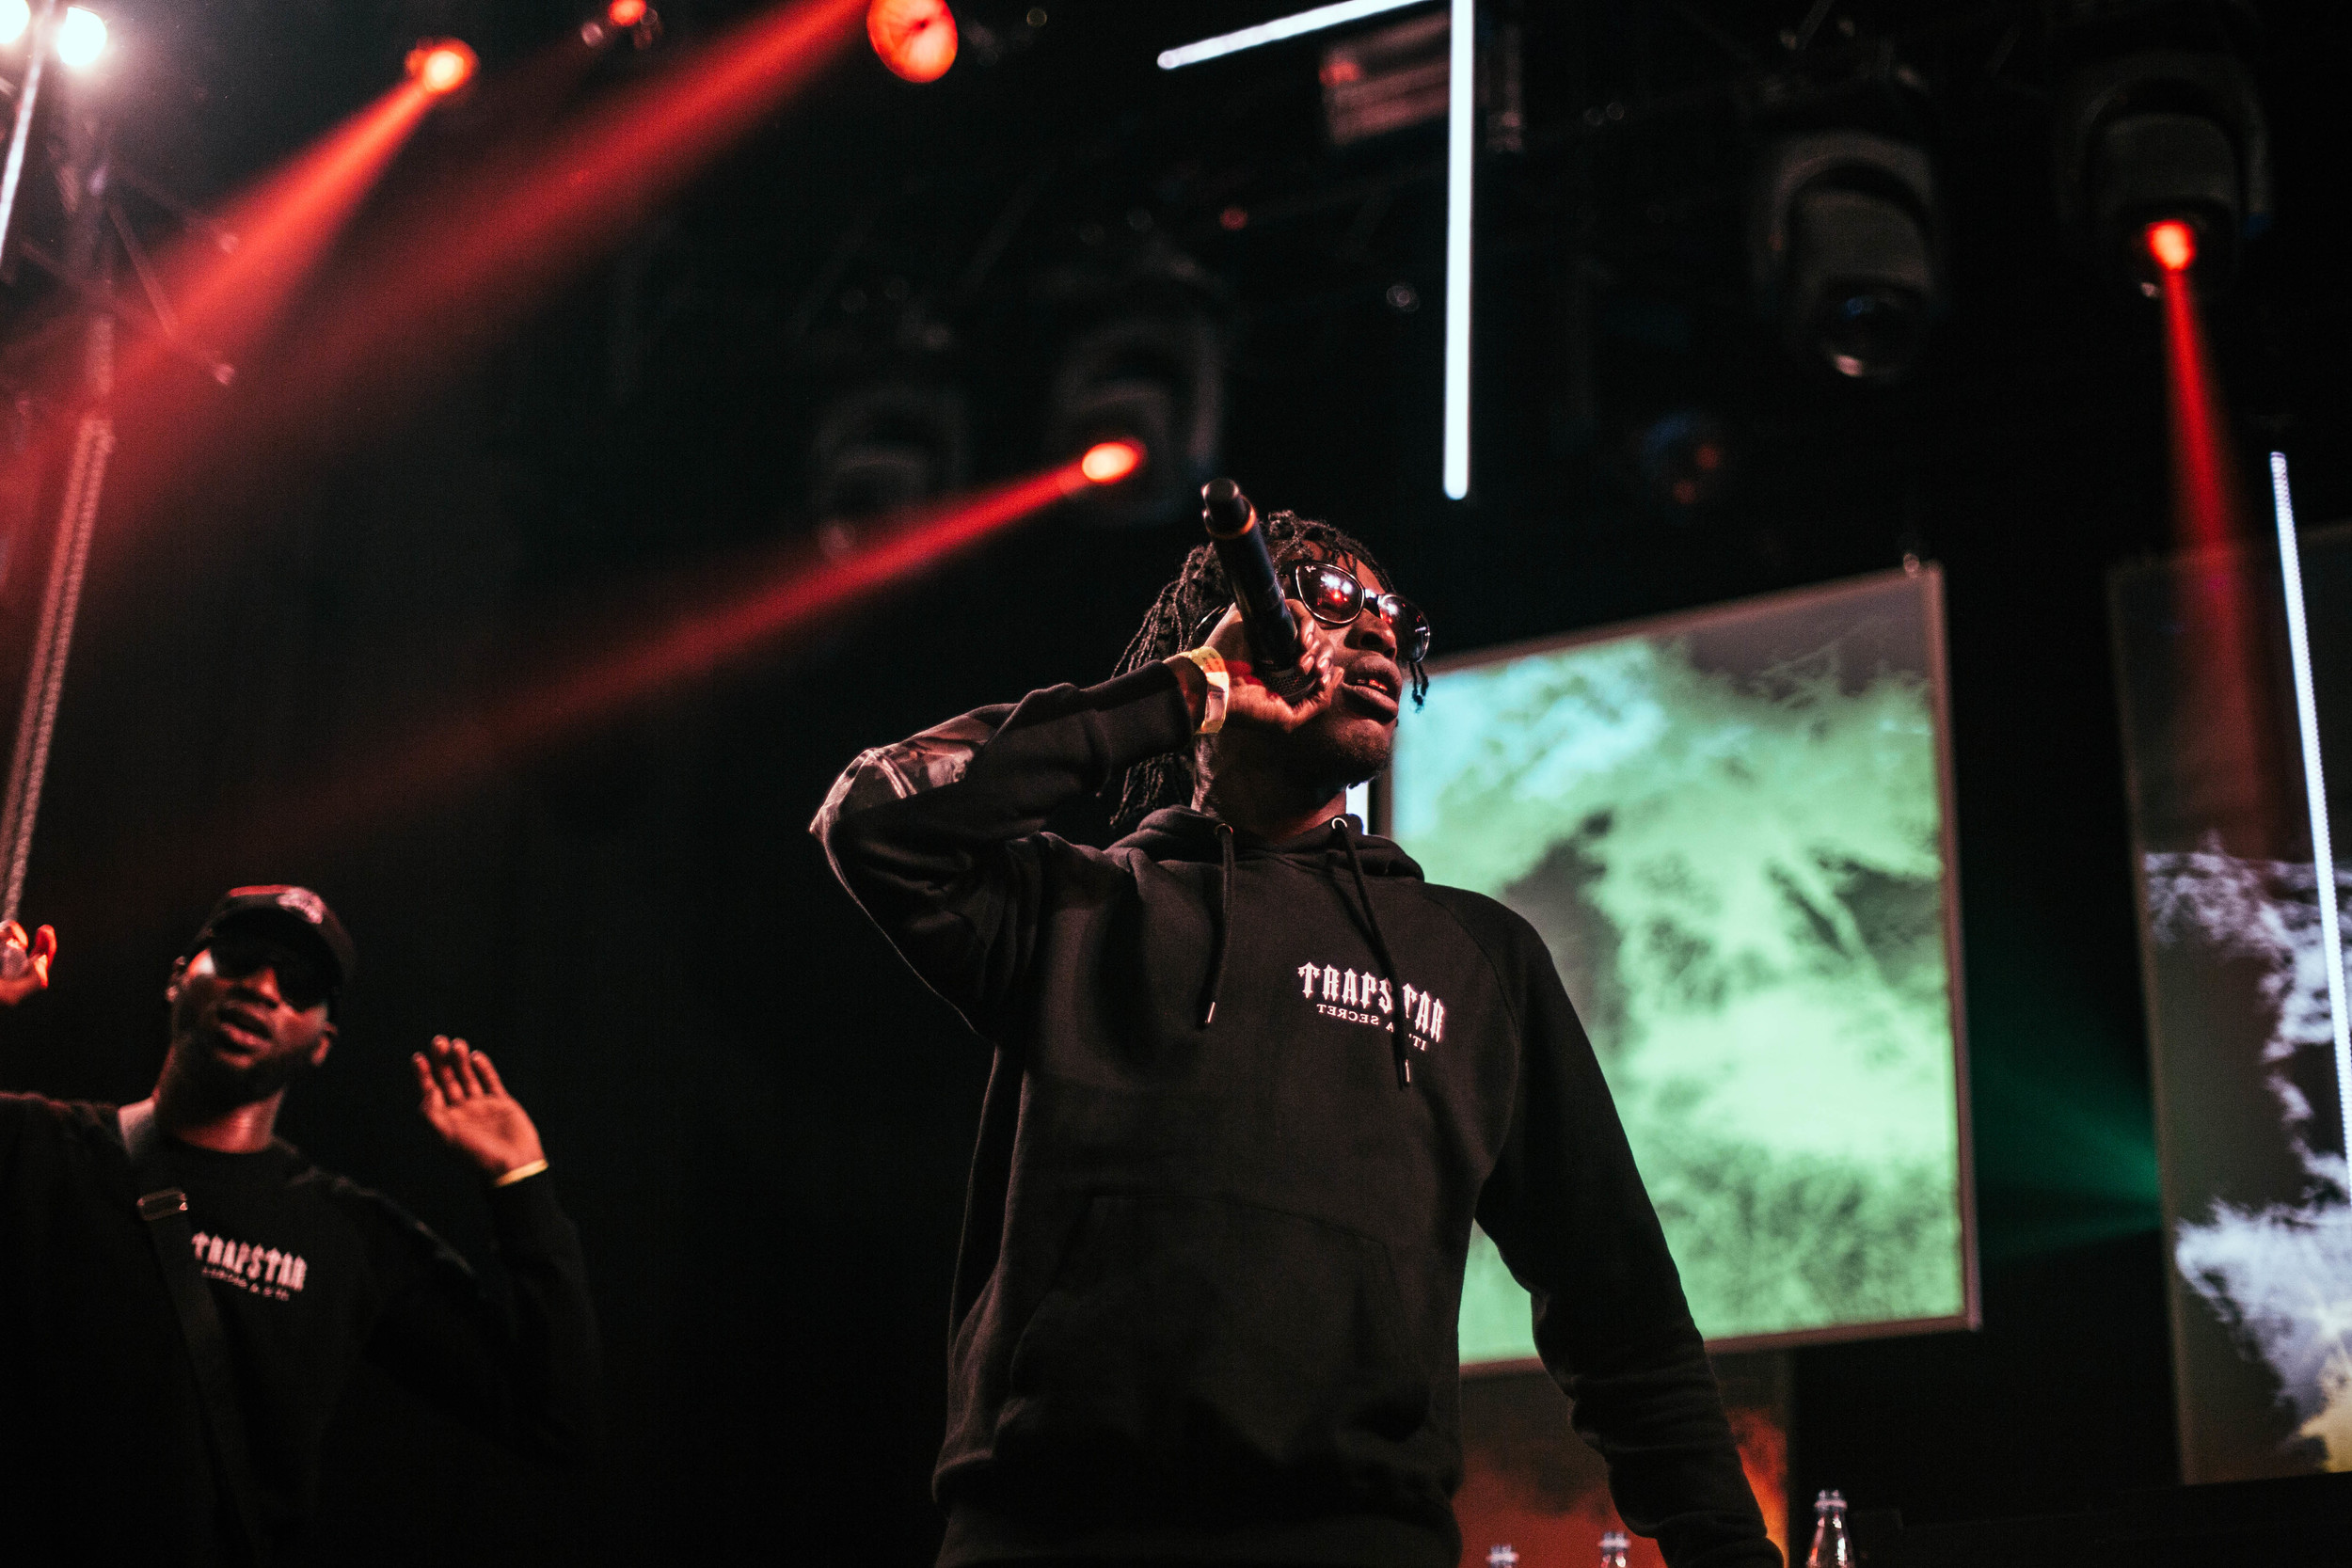 Section Boyz - VictorStawicki-2-08-2016.jpg (2 of 3).jpg